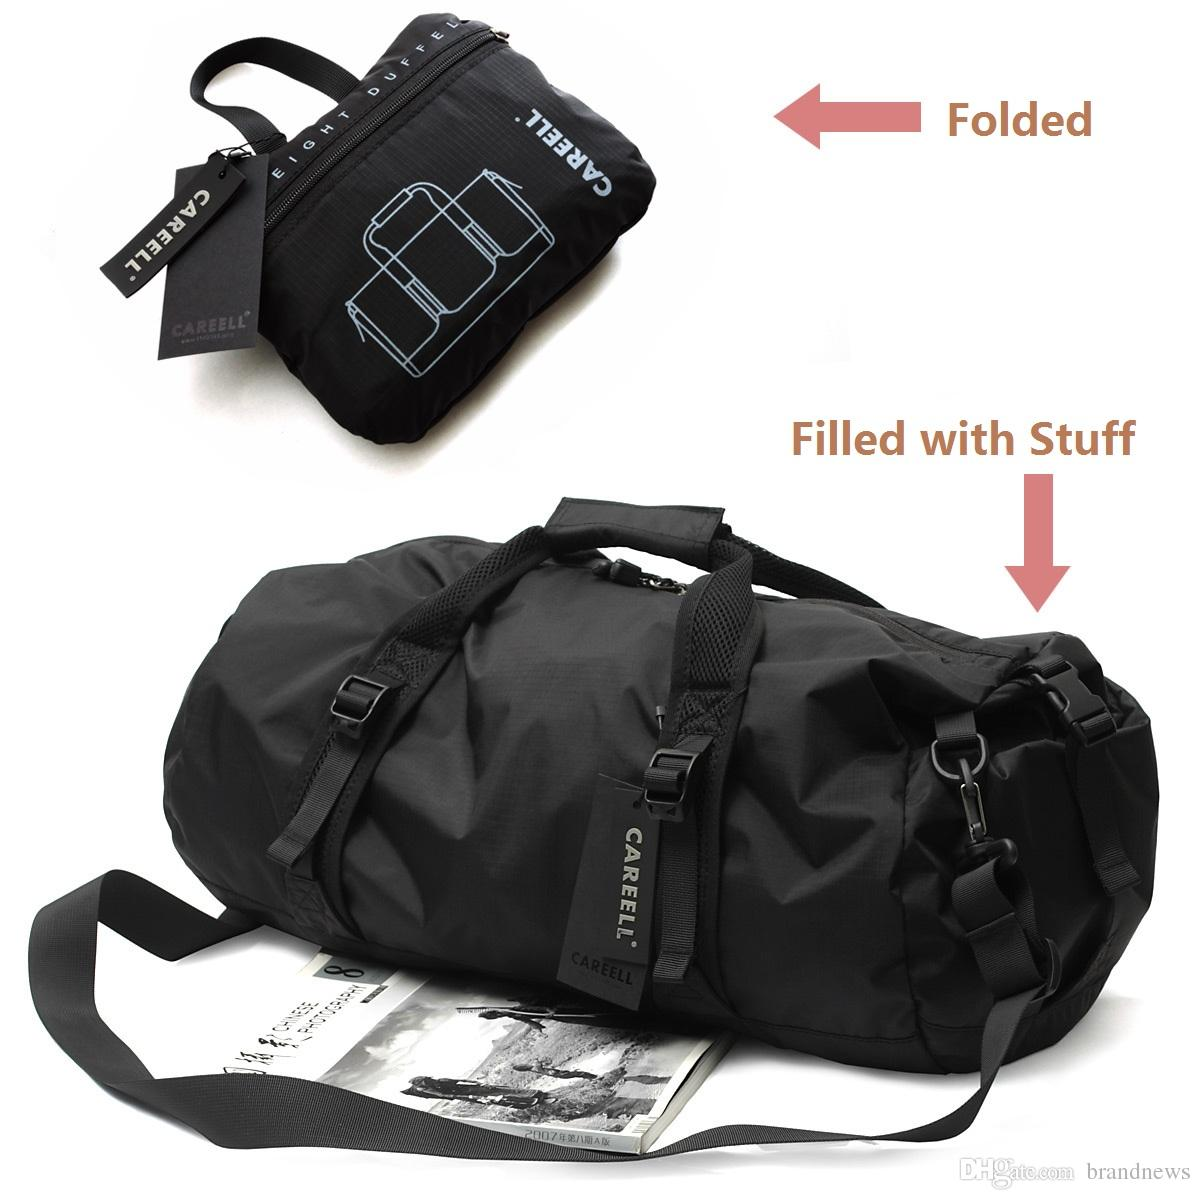 Gym Bag Flipkart: Aliexpress.com : Buy High Quality Foldable Men Travel Tote